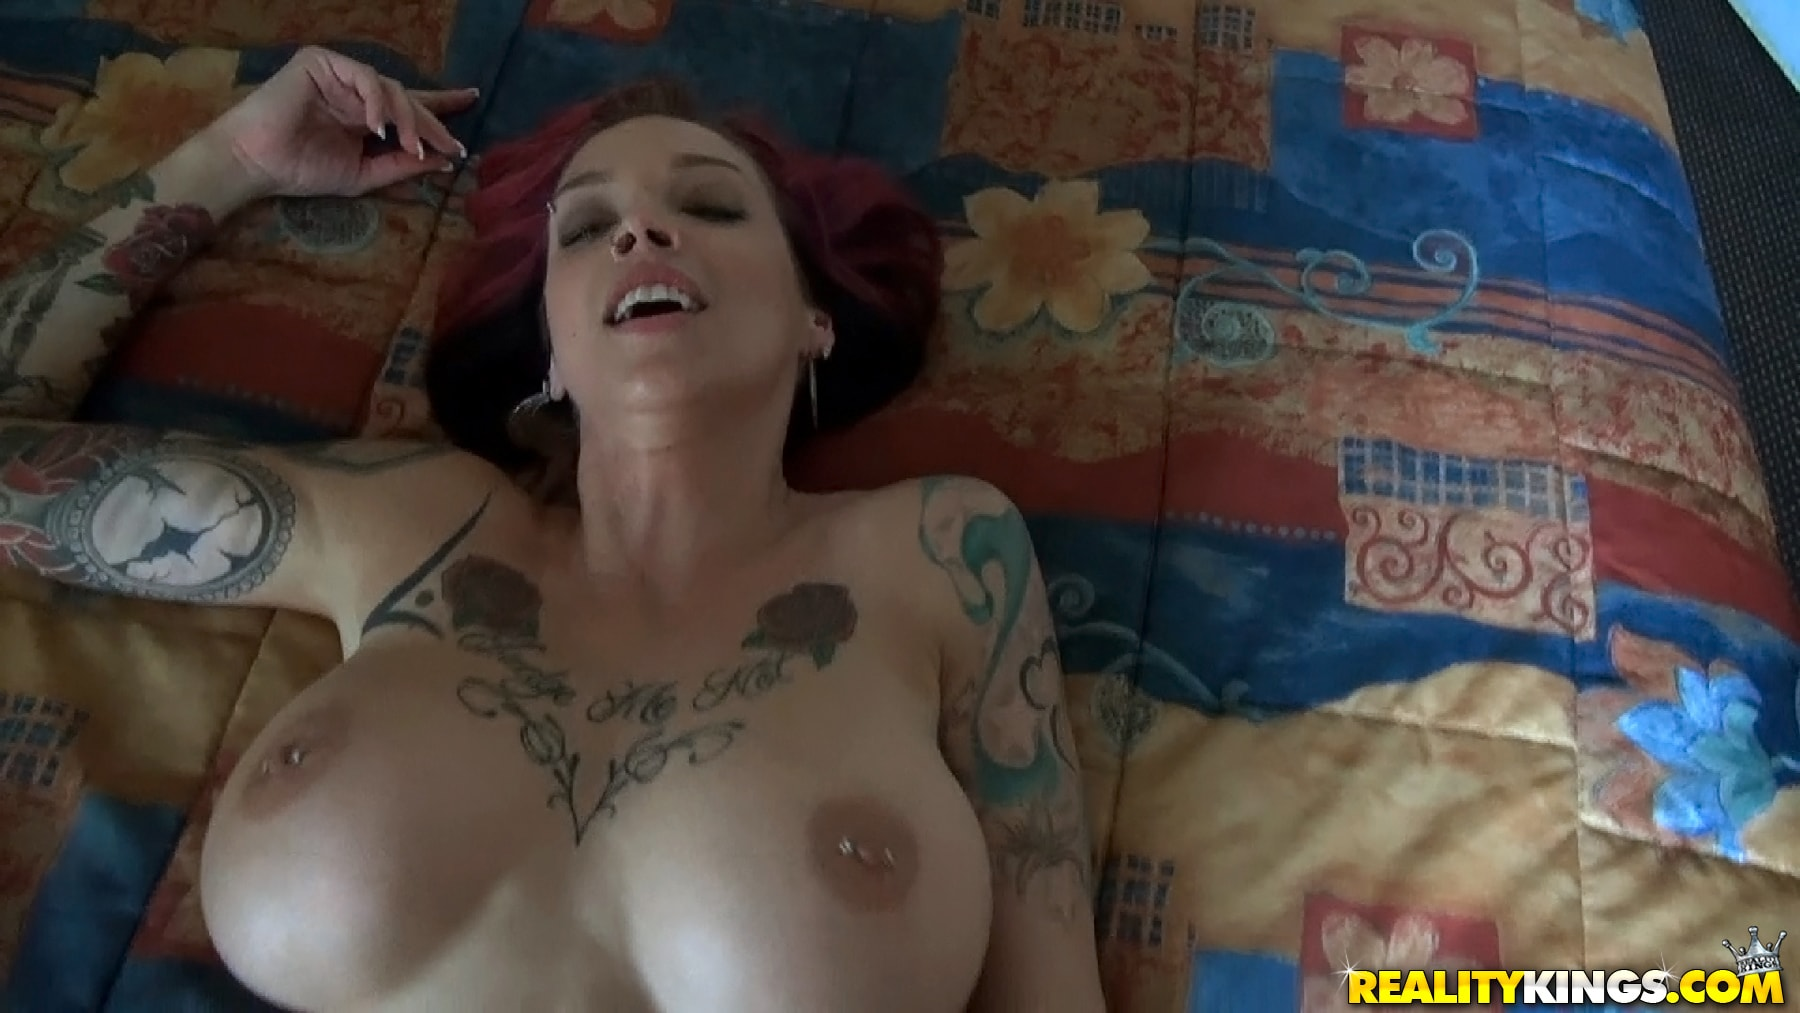 Reality Kings 'Peak performance' starring Anna Bell Peaks (photo 405)